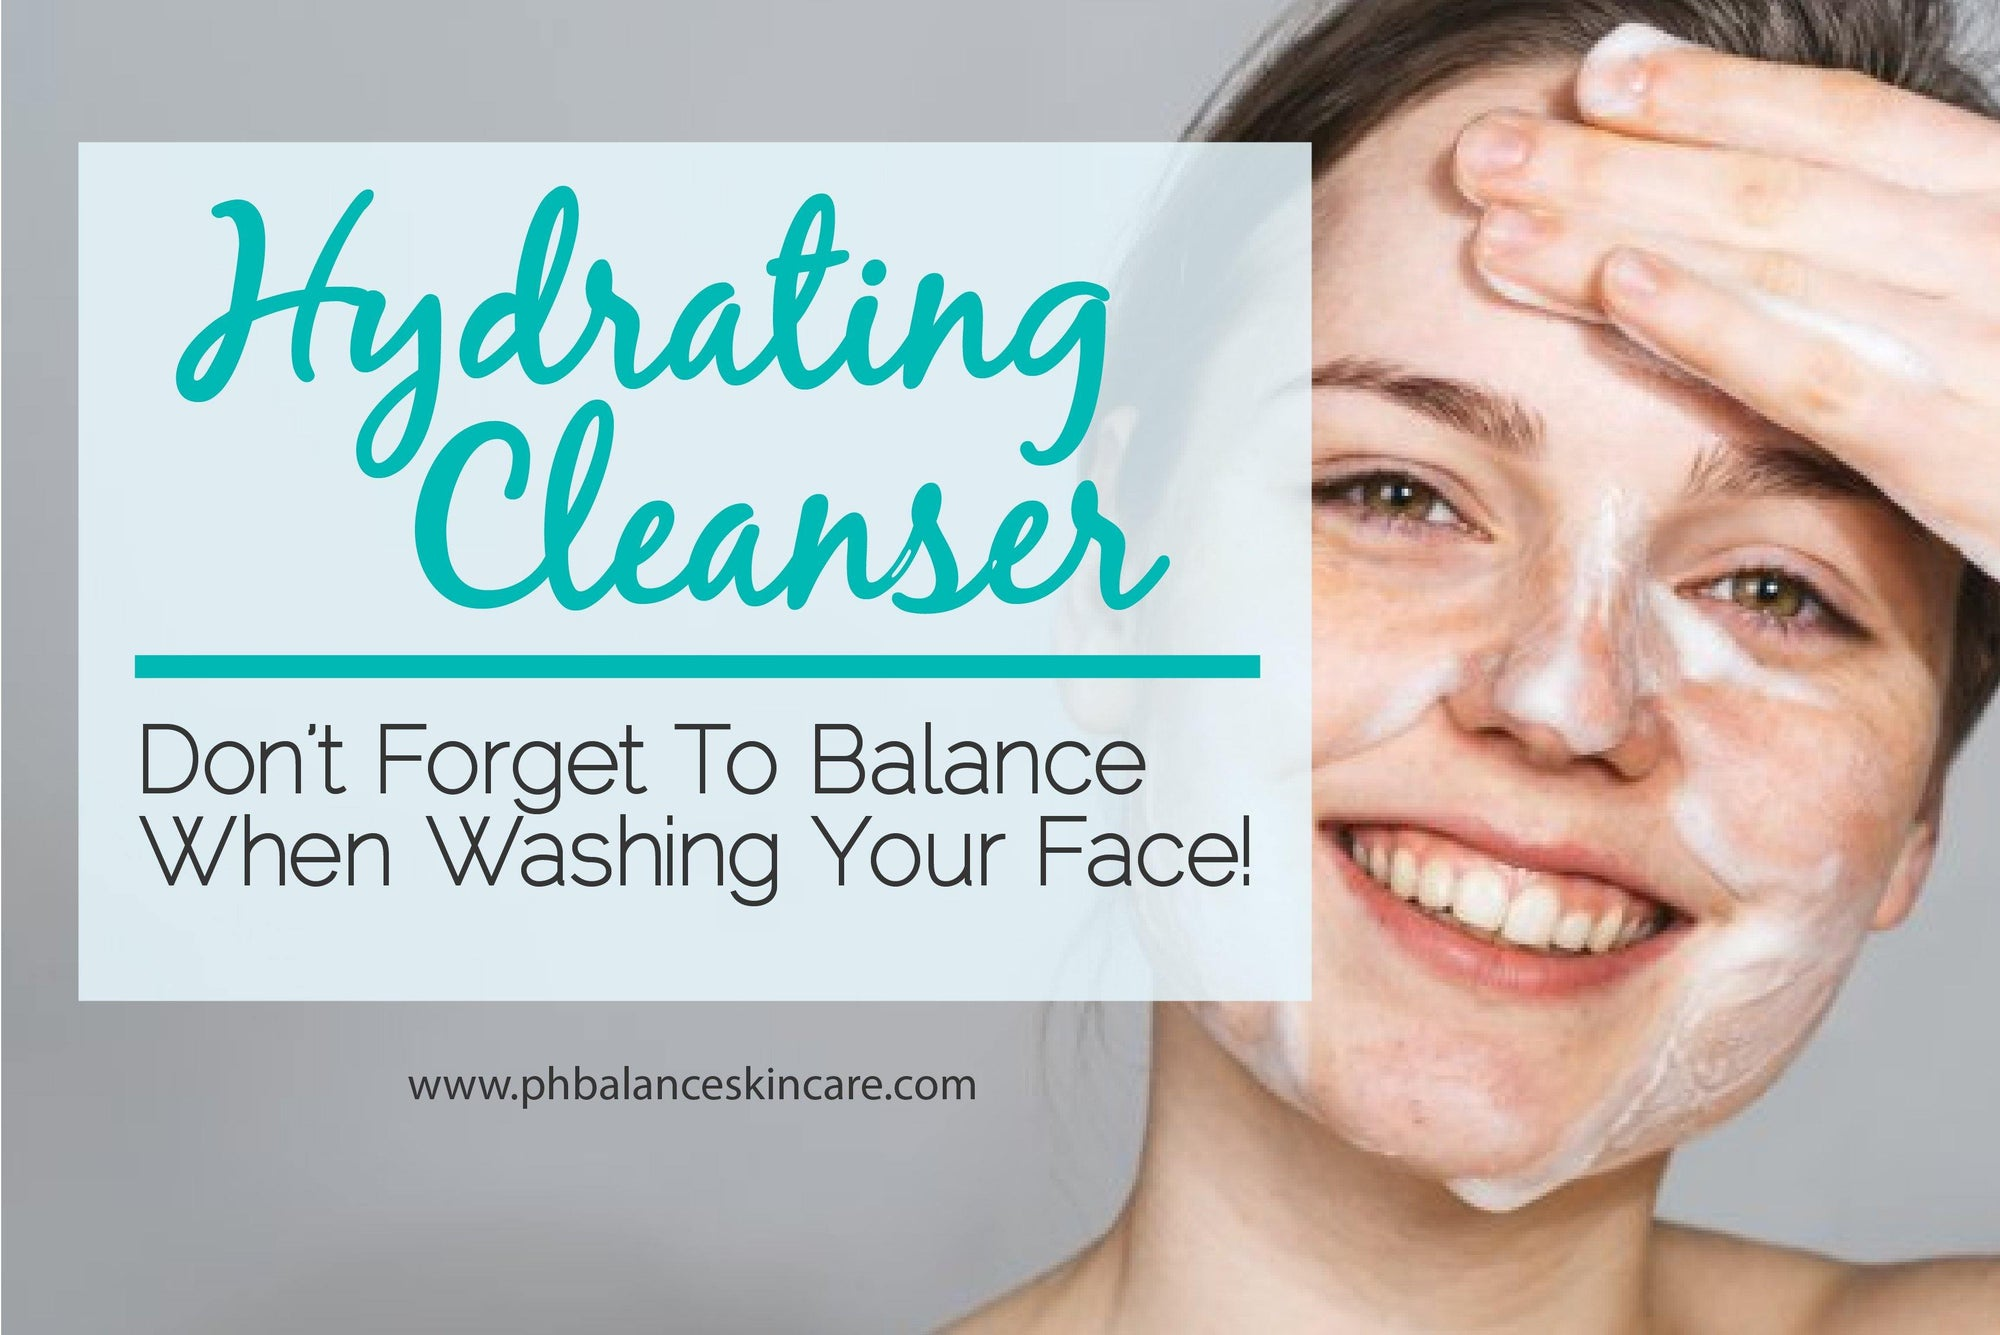 Hydrating Cleanser: Don't Forget To Balance When Washing Your Face! - pH Balance Skincare